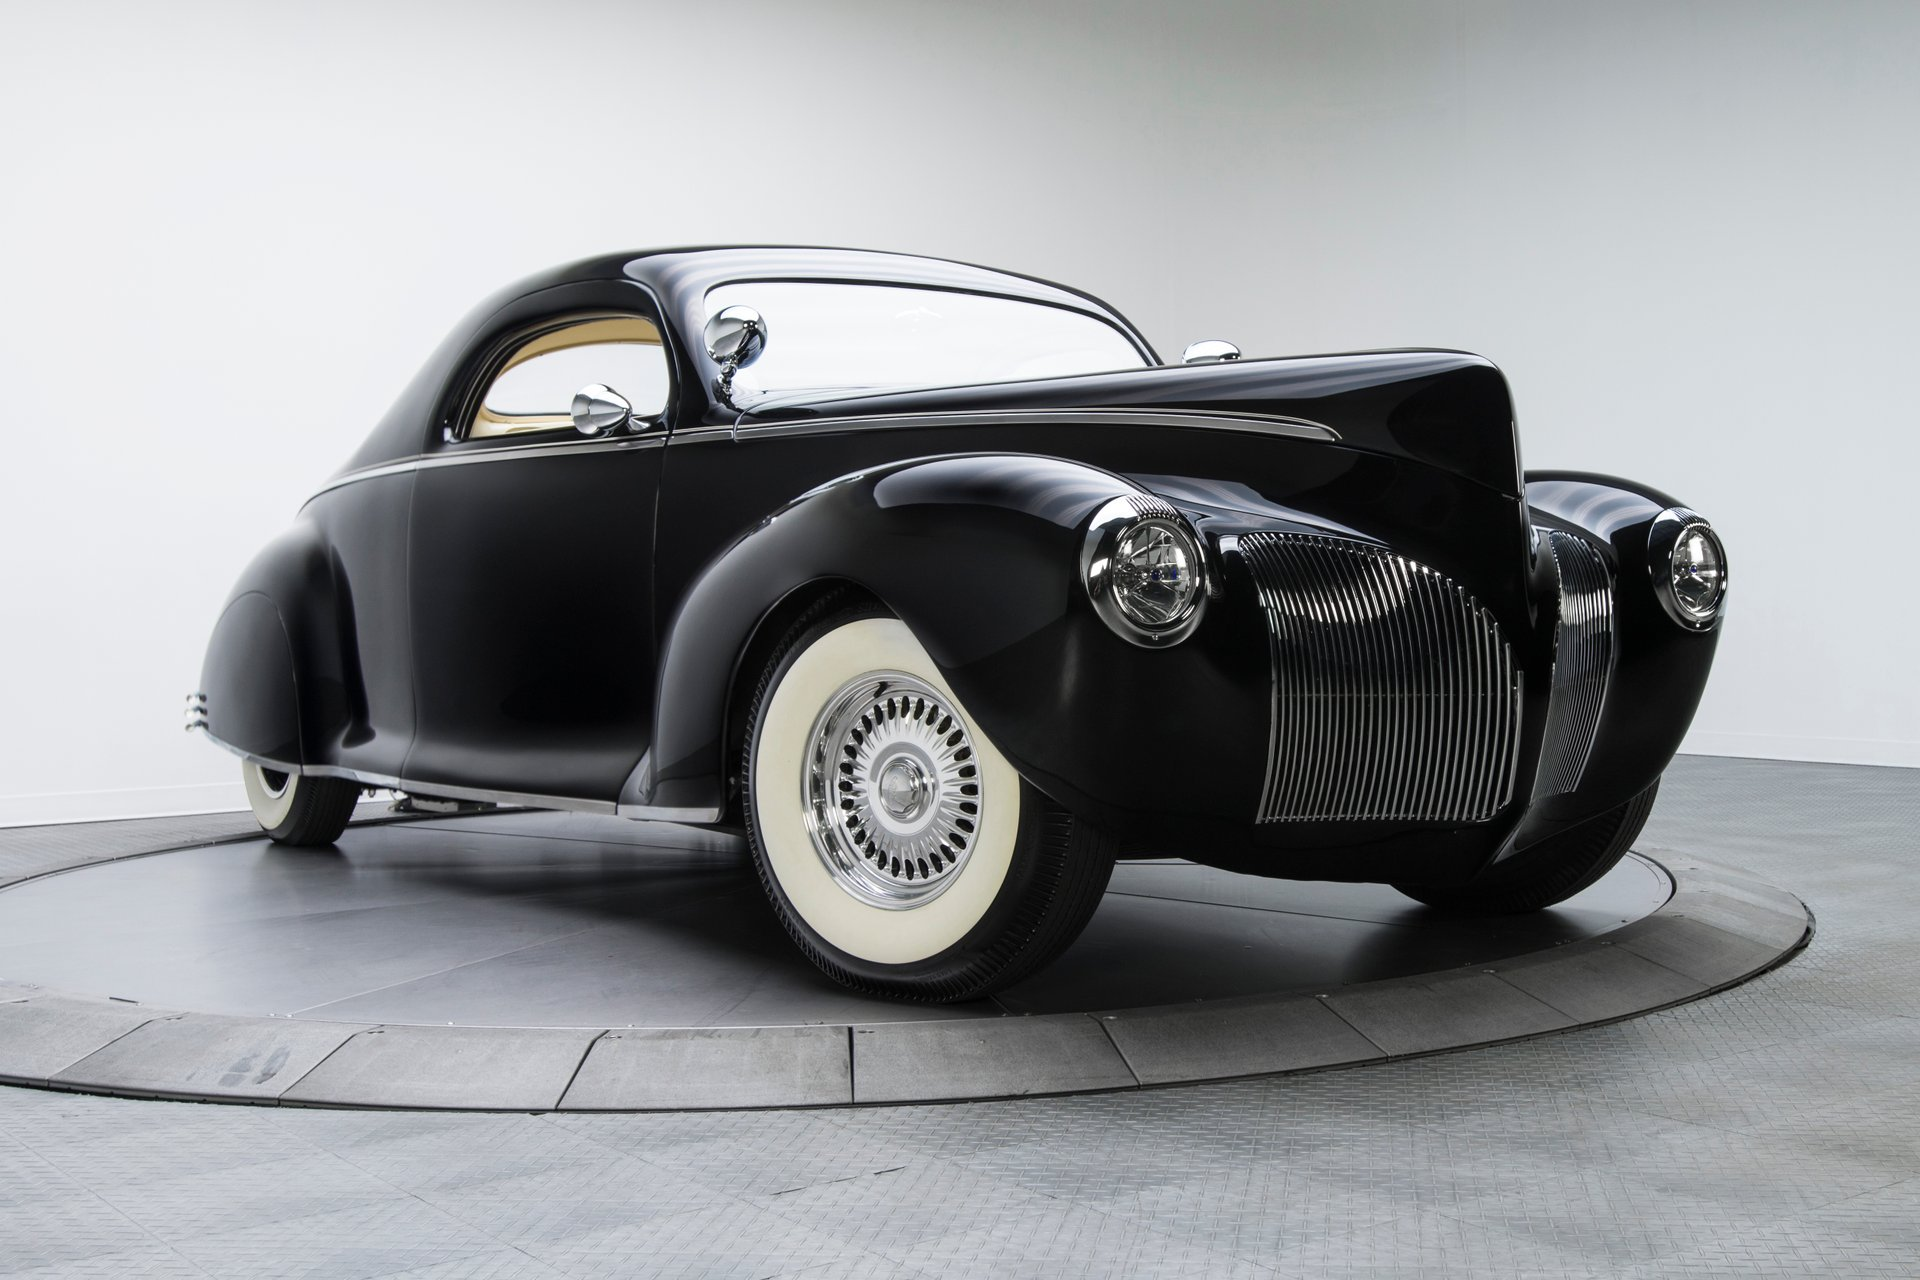 135520 1940 Lincoln Zephyr Rk Motors Classic Cars For Sale